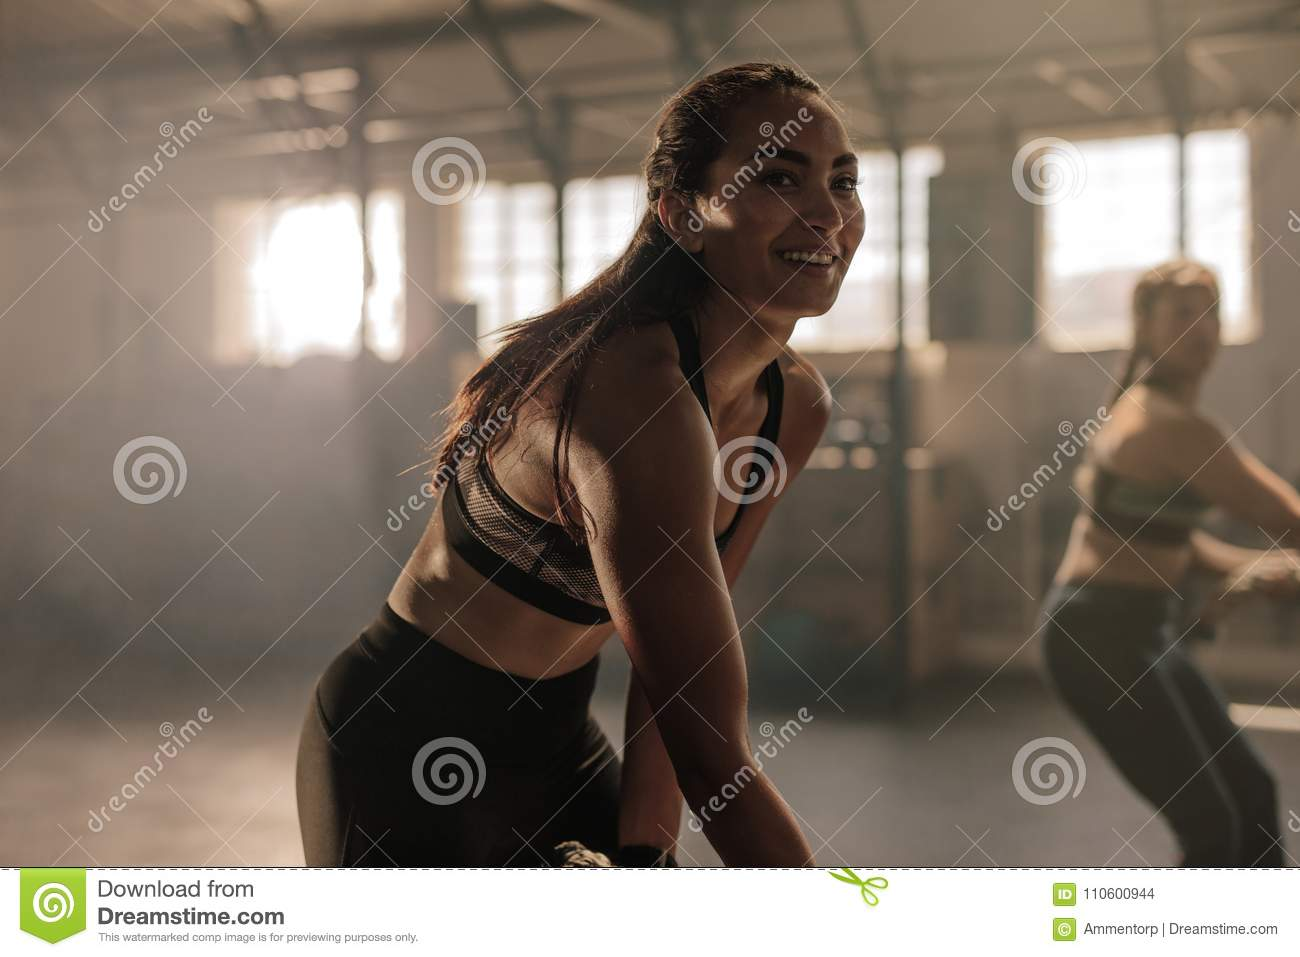 Happy Young Women Doing Intense Physical Workout In Gym Females At Cross Training Class Strength Exercises